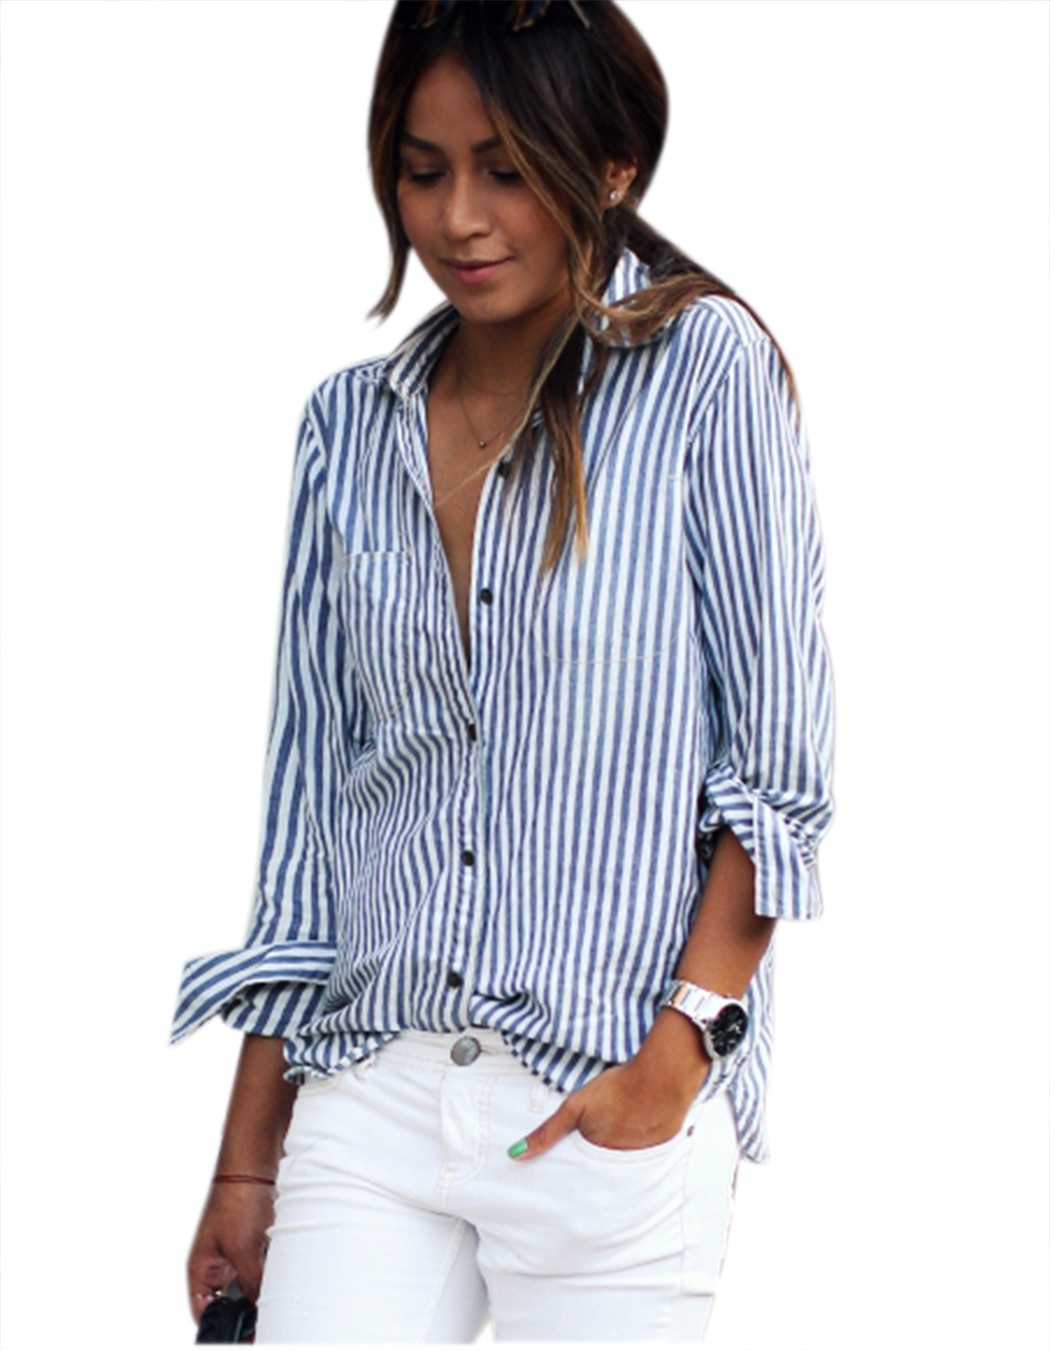 Compare Prices on Stripe Shirt- Online Shopping/Buy Low Price ...